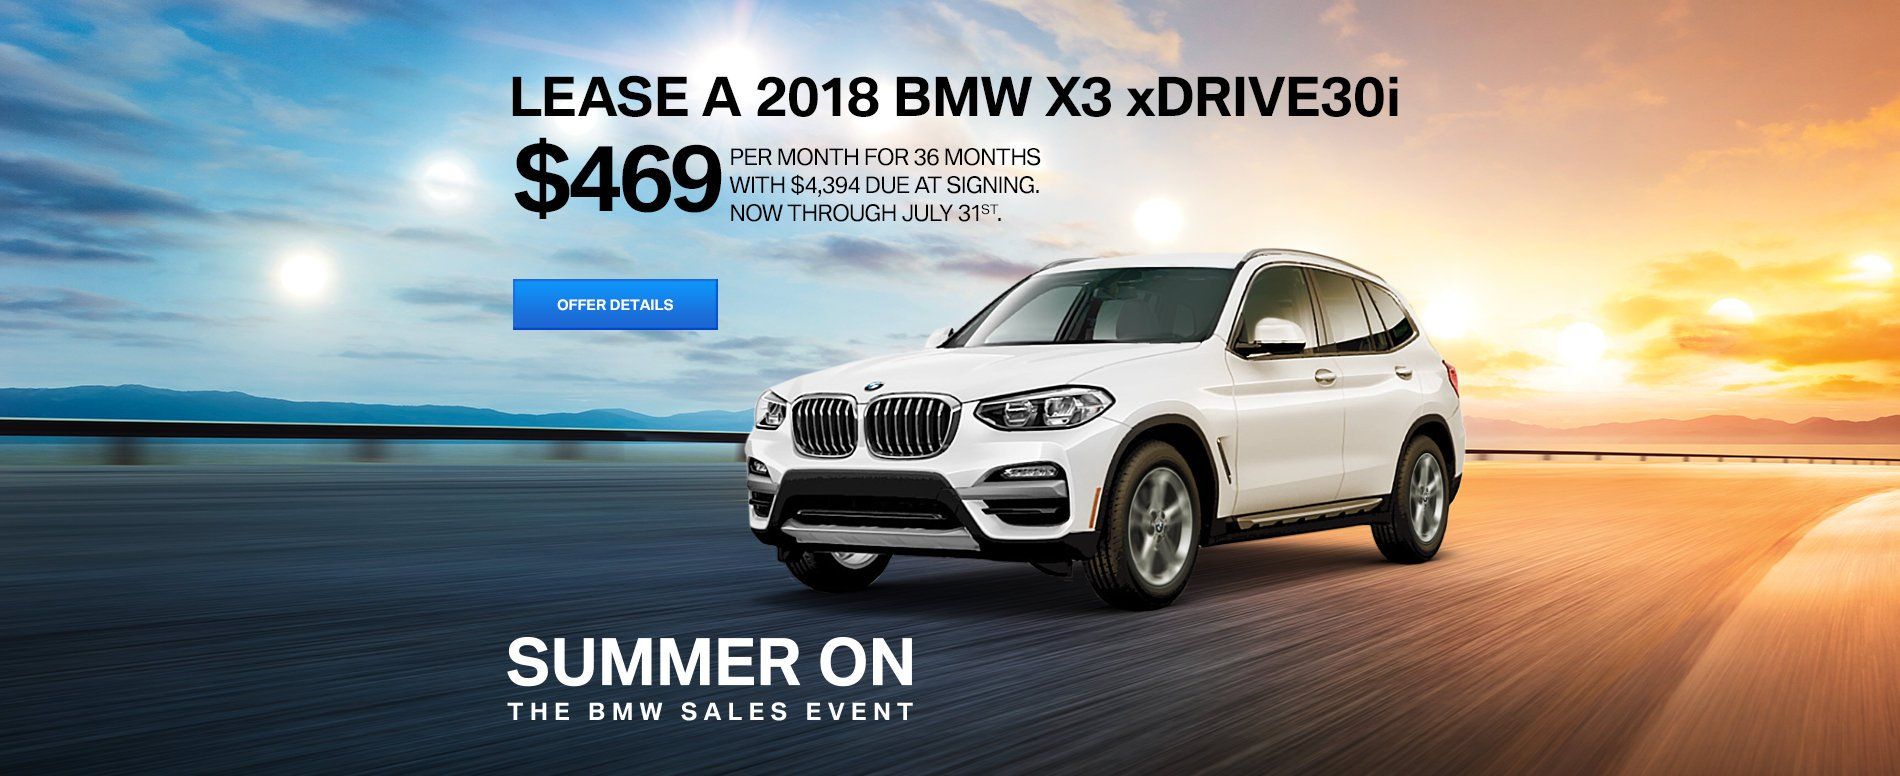 LEASE A 2018 X3 xDRIVE30i FOR $489 /MO FOR 36 MONTHS WITH $4,414